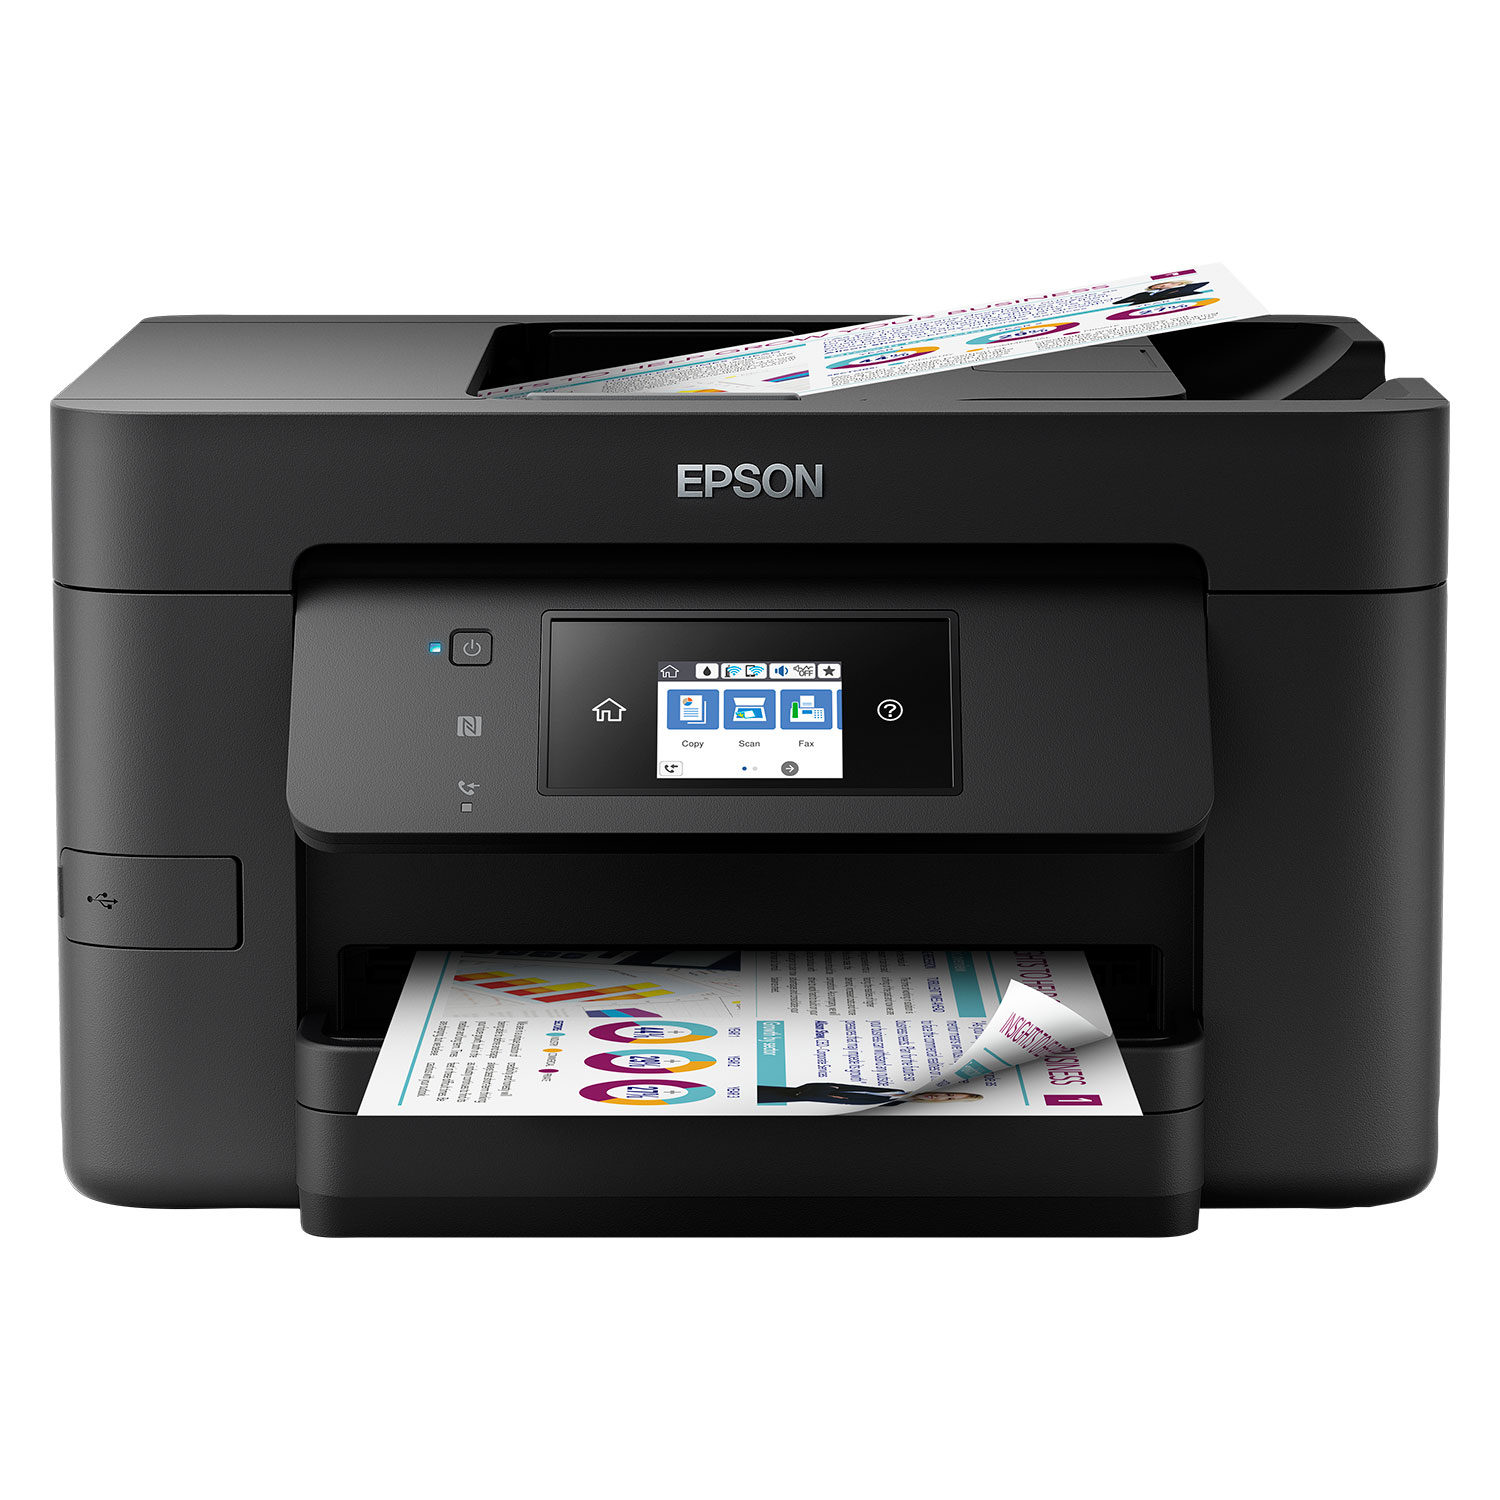 Epson Multifunctional WorkForce Pro WF-4720DWF 4 in 1, Netwerk, WiFi, ADF